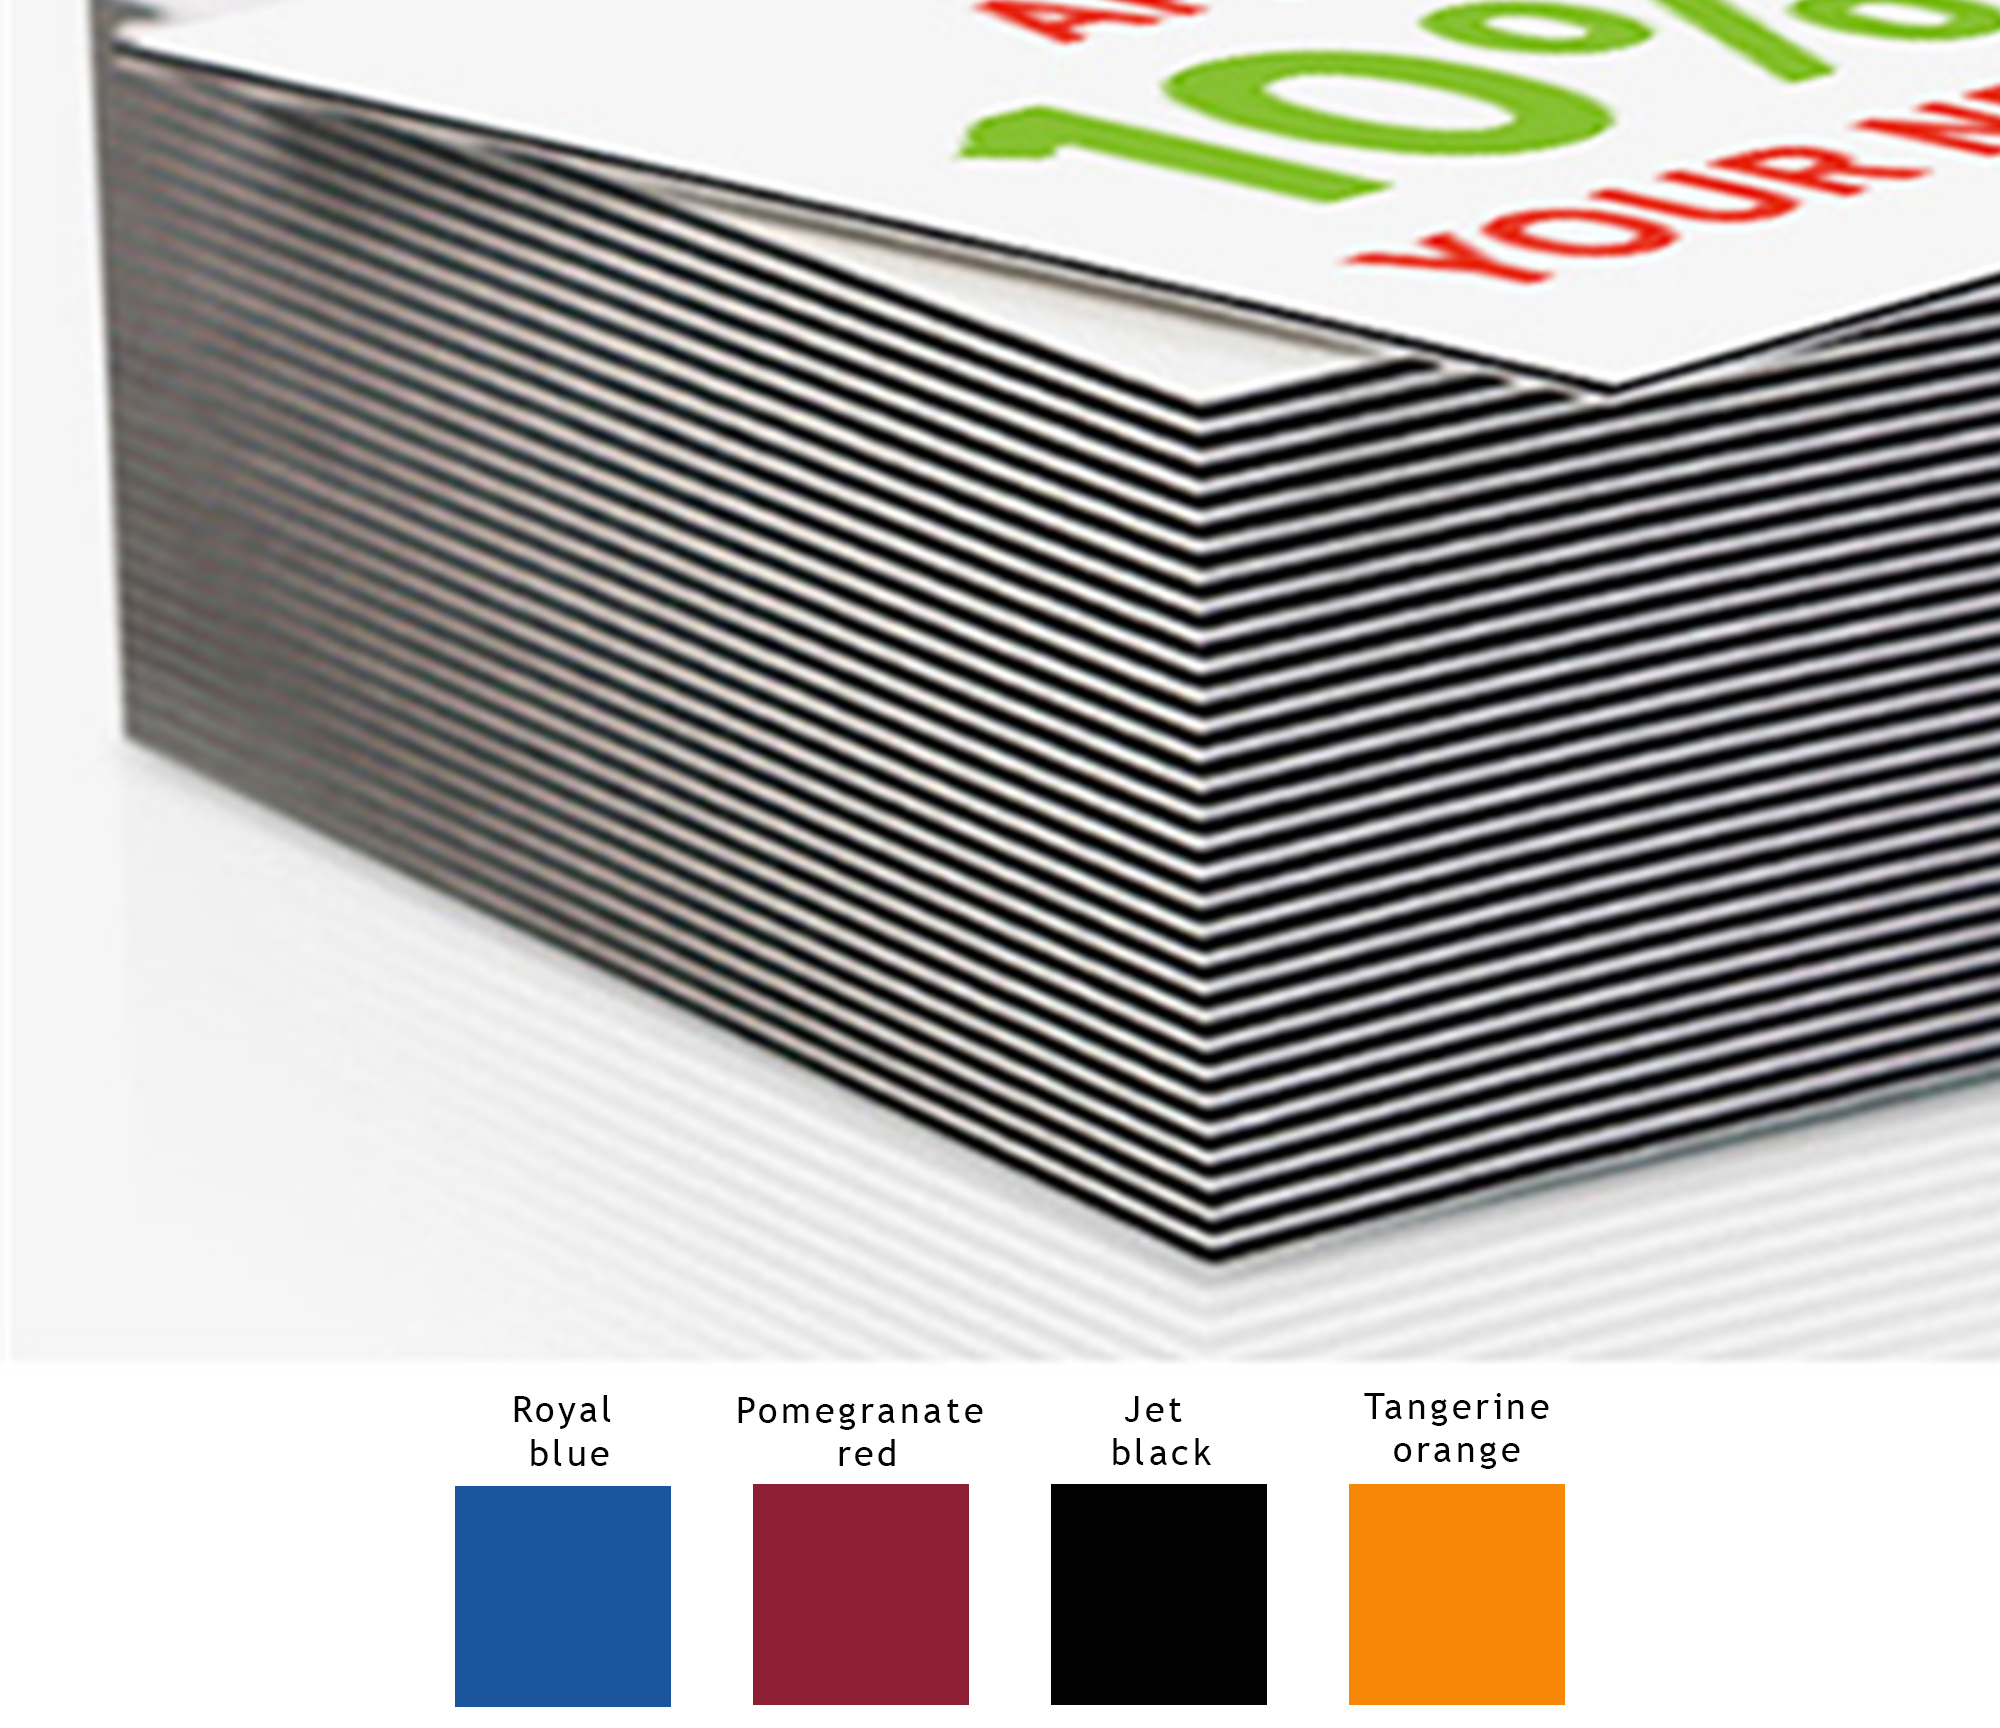 https://k12print.com/images/products_gallery_images/triple-layer-color-business-cards.jpg